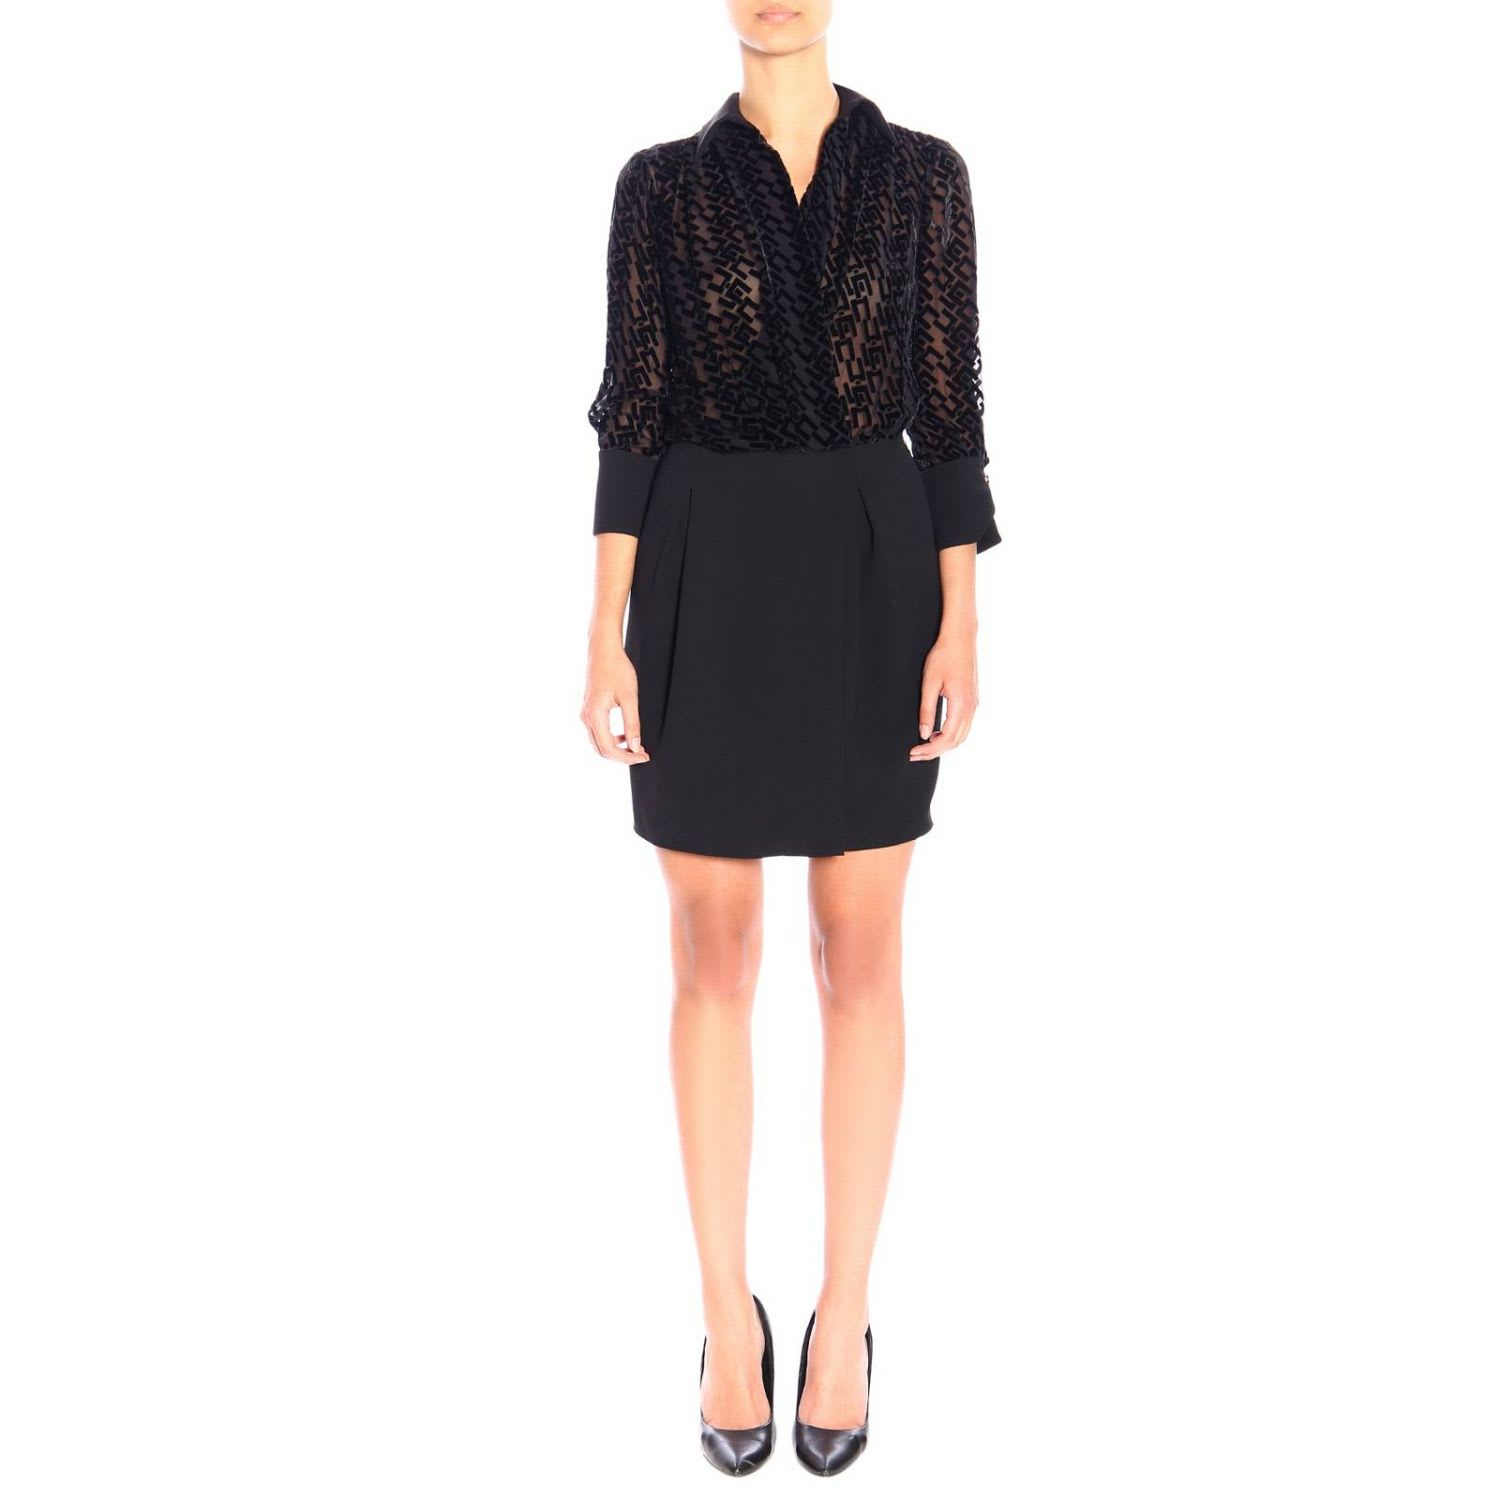 Photo of  Elisabetta Franchi Dress Elisabetta Franchi Dress With All-over Flocked Logo- shop Elisabetta Franchi Celyn B.  online sales